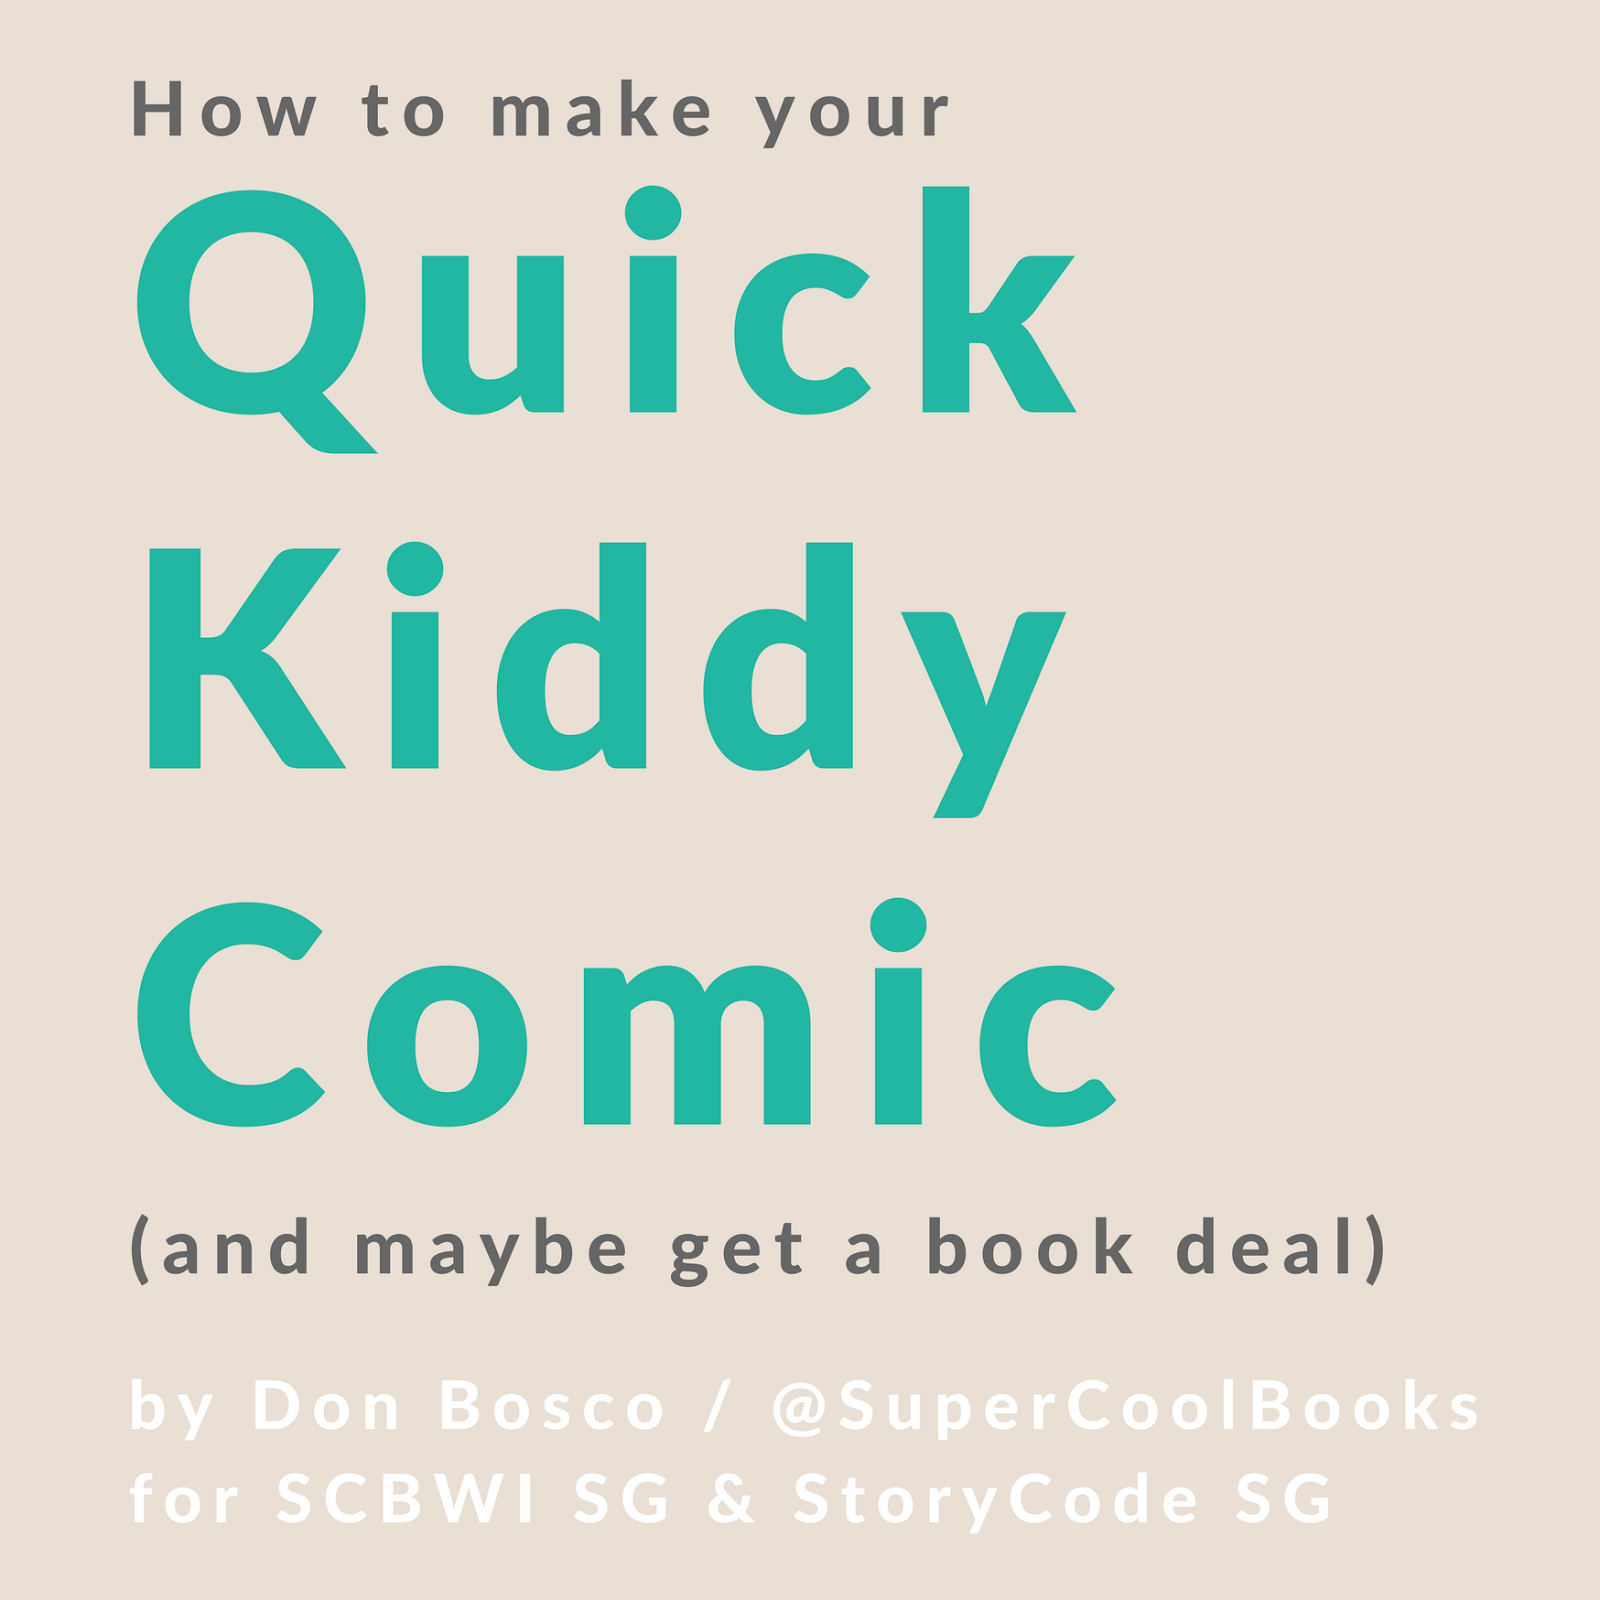 How To Make A Book Quick : Super cool books scbwi sg how to make your quick